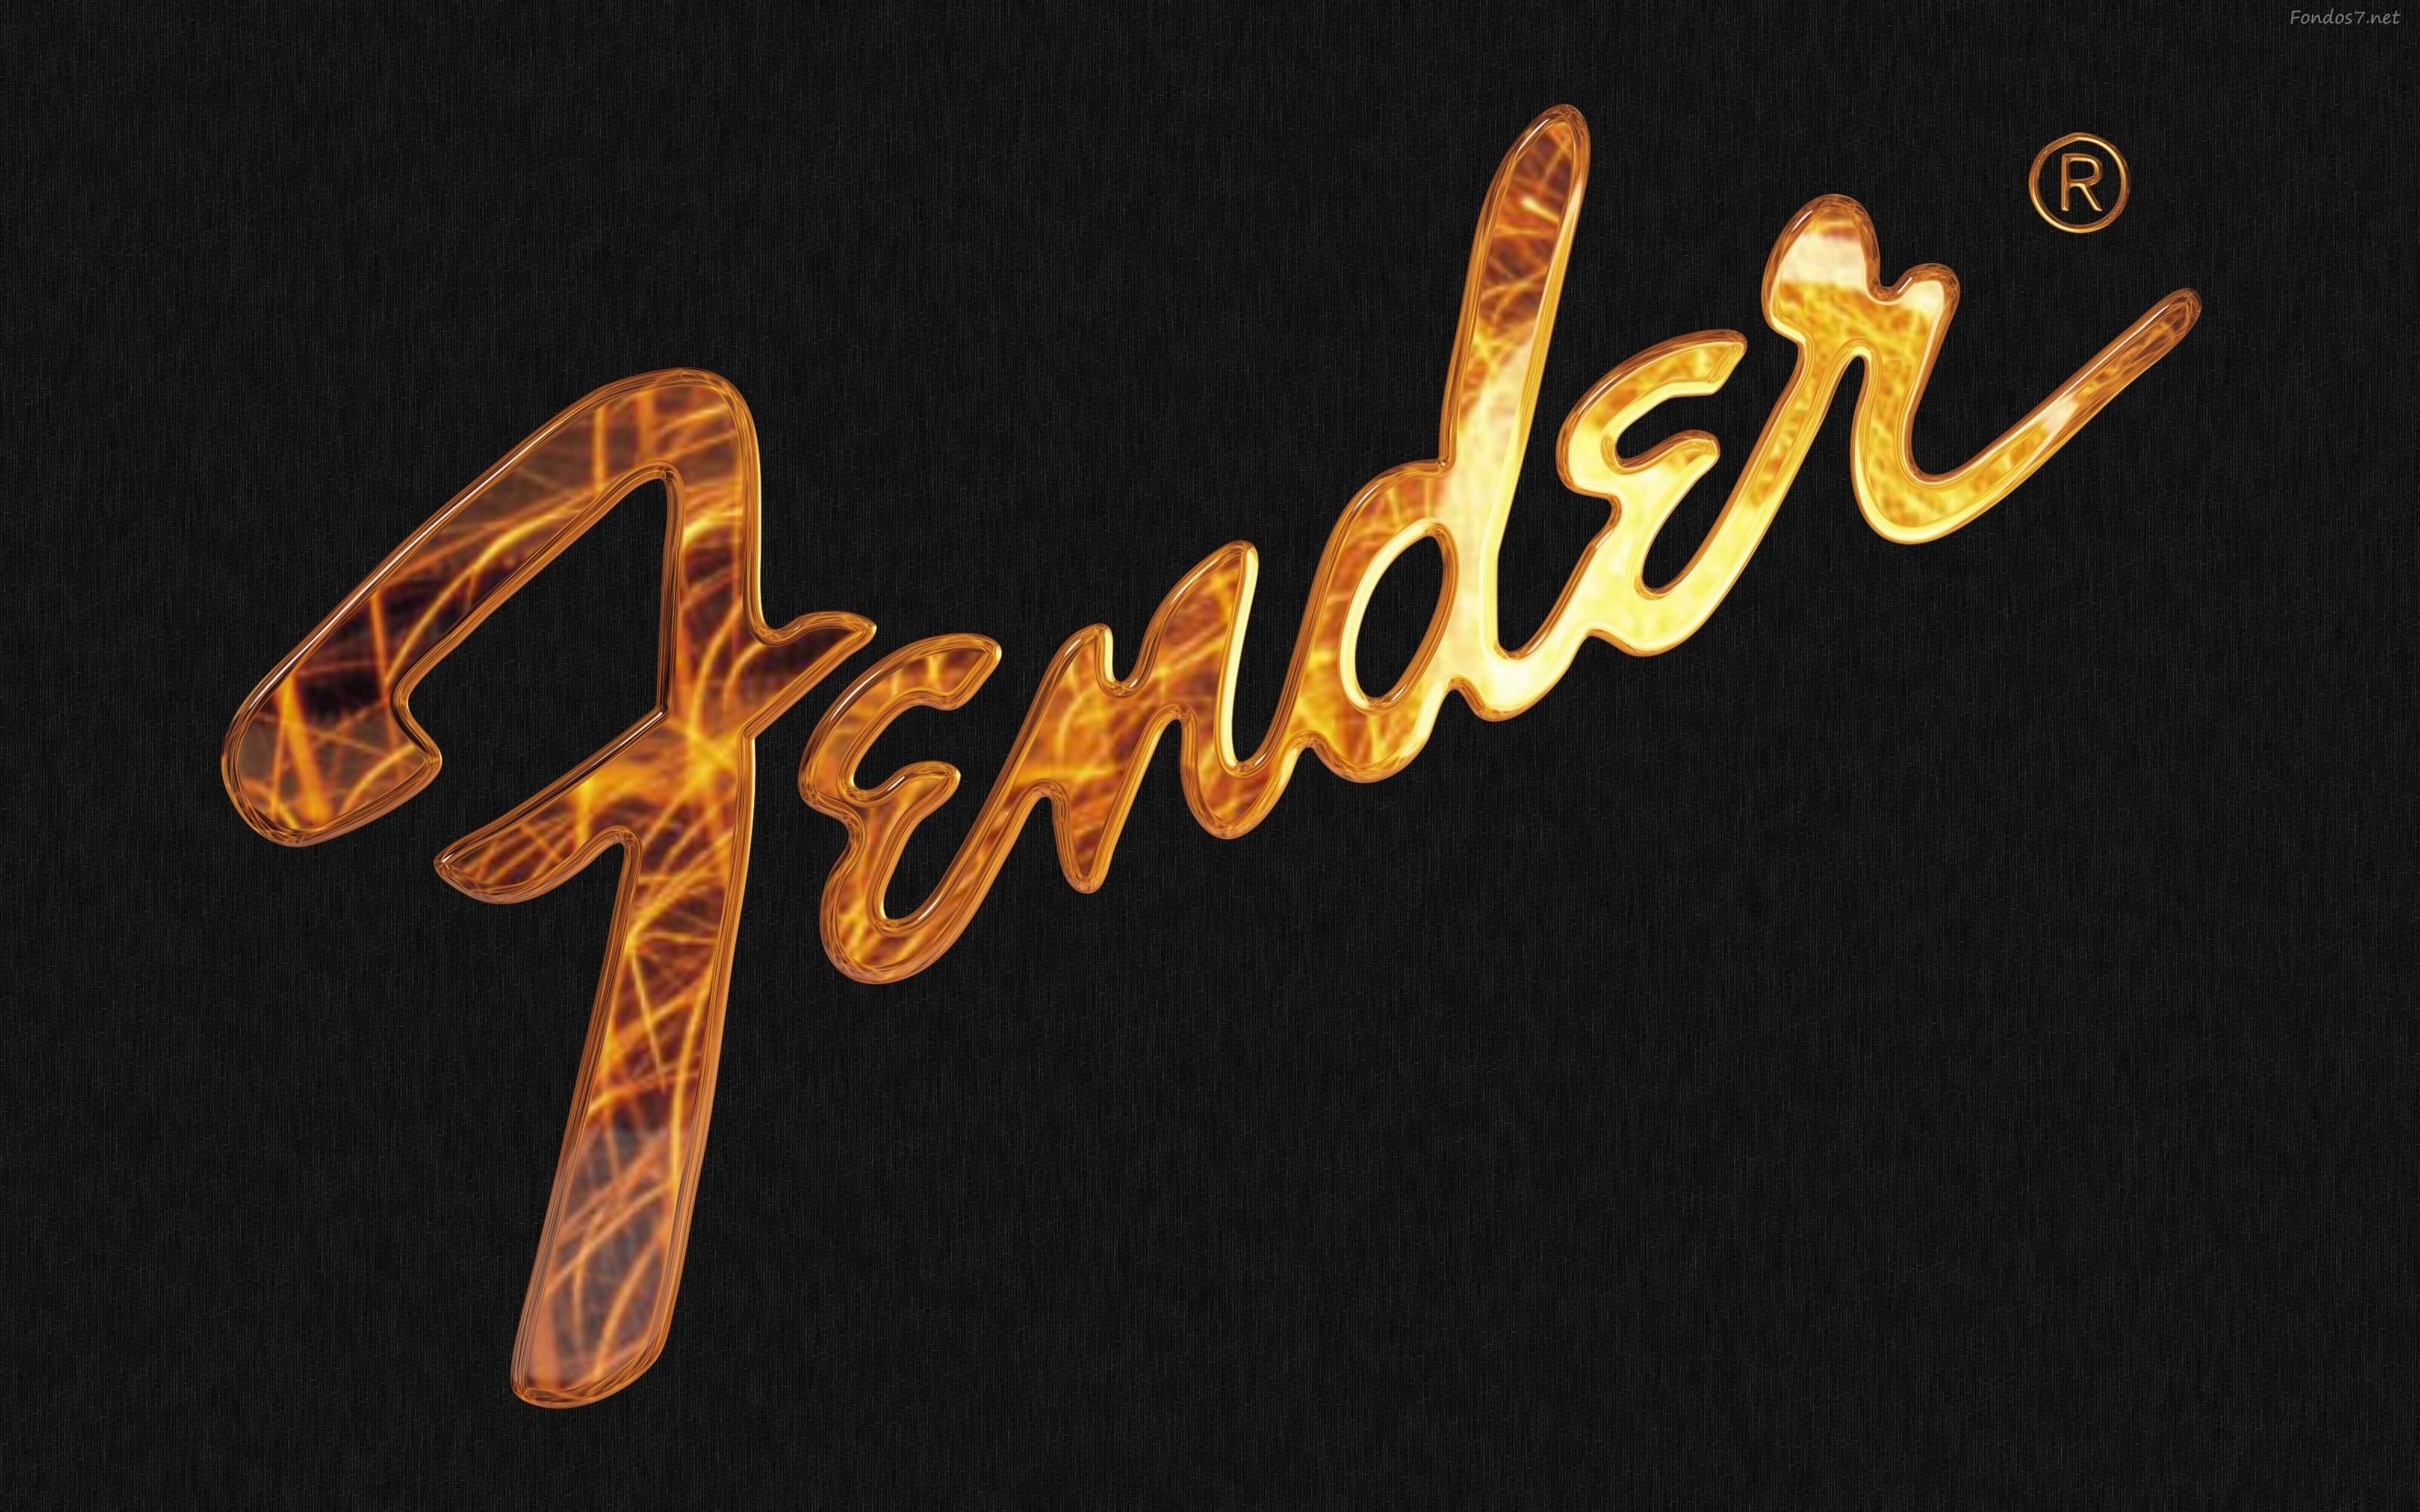 Fender Wallpapers - Taringa!